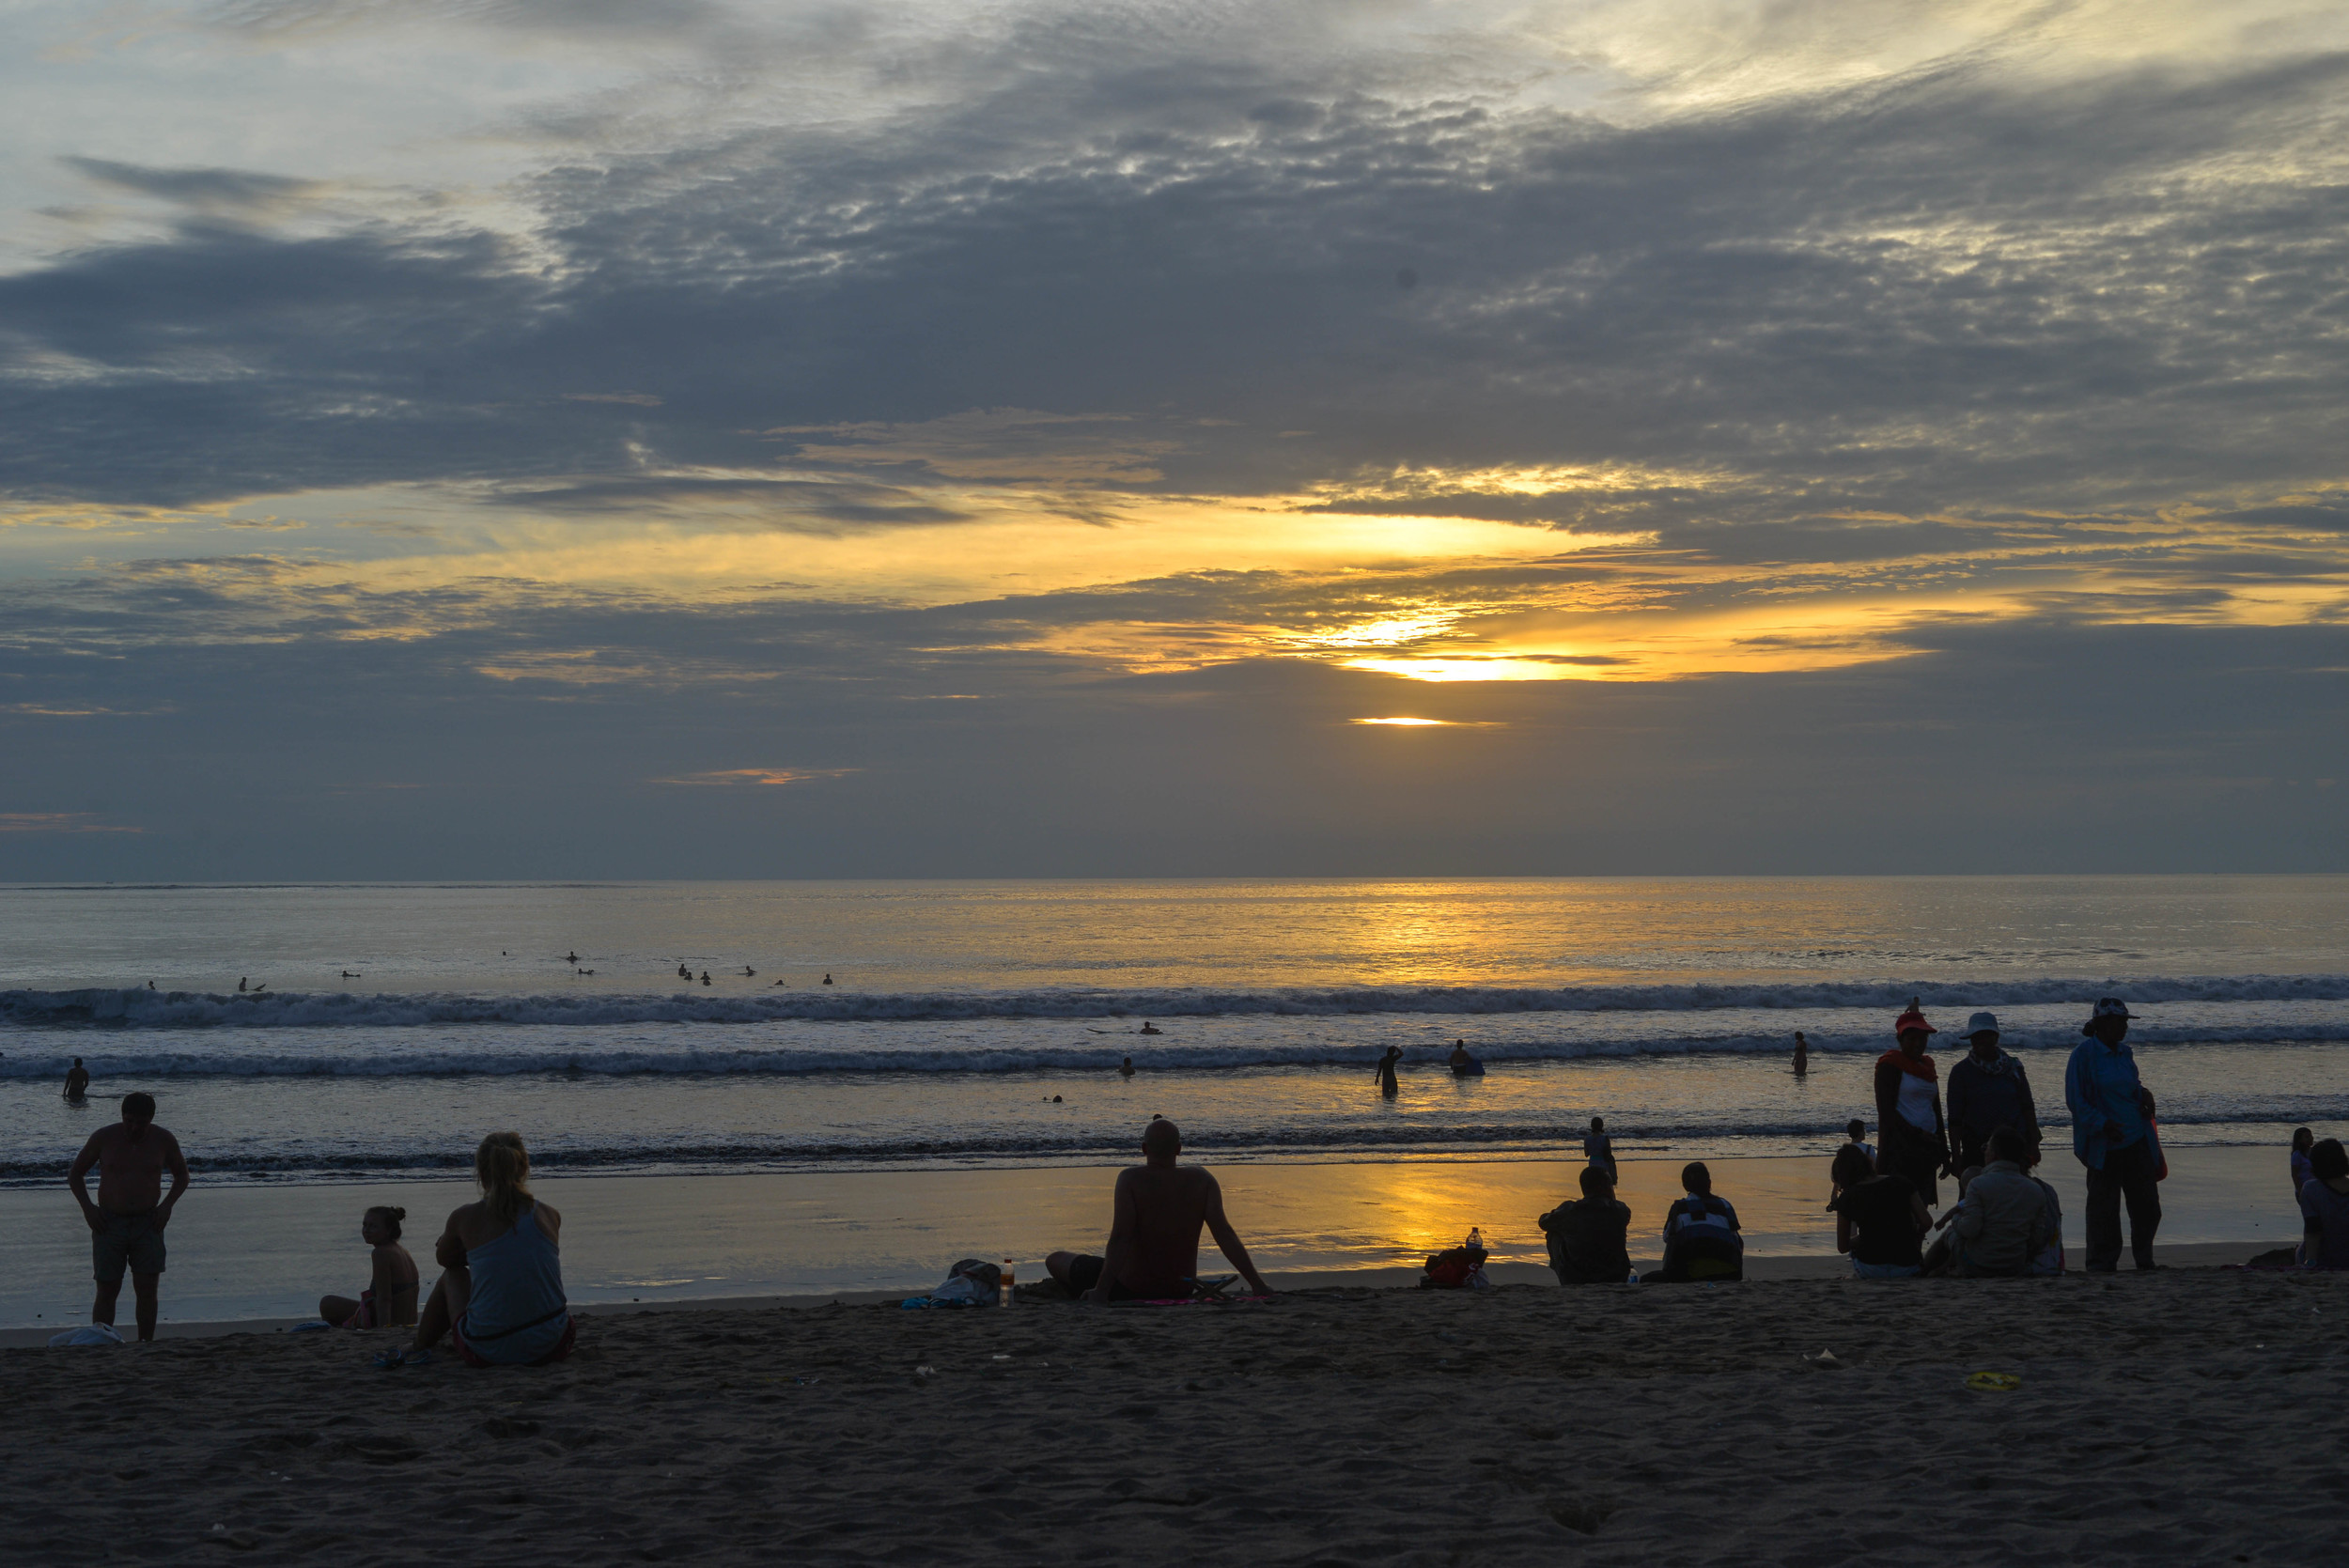 Love the vibe on Kuta beach at sunset, such an eclectic mix of locals, expats and travellers.